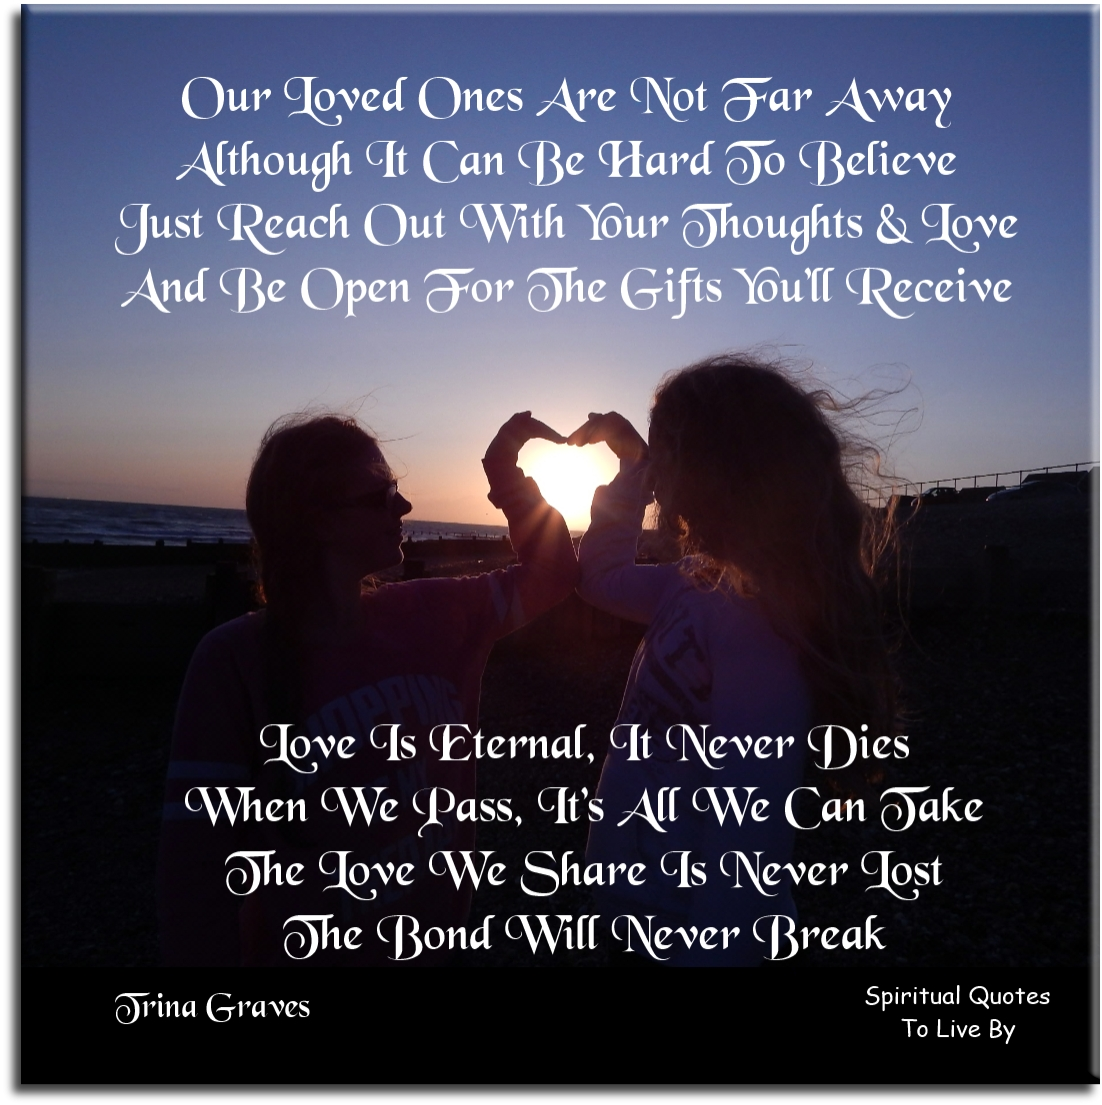 Our loved ones are not far away, although it can be hard to believe, just reach out with your thoughts & love.. - Trina Graves - Spiritual Quotes To Live By